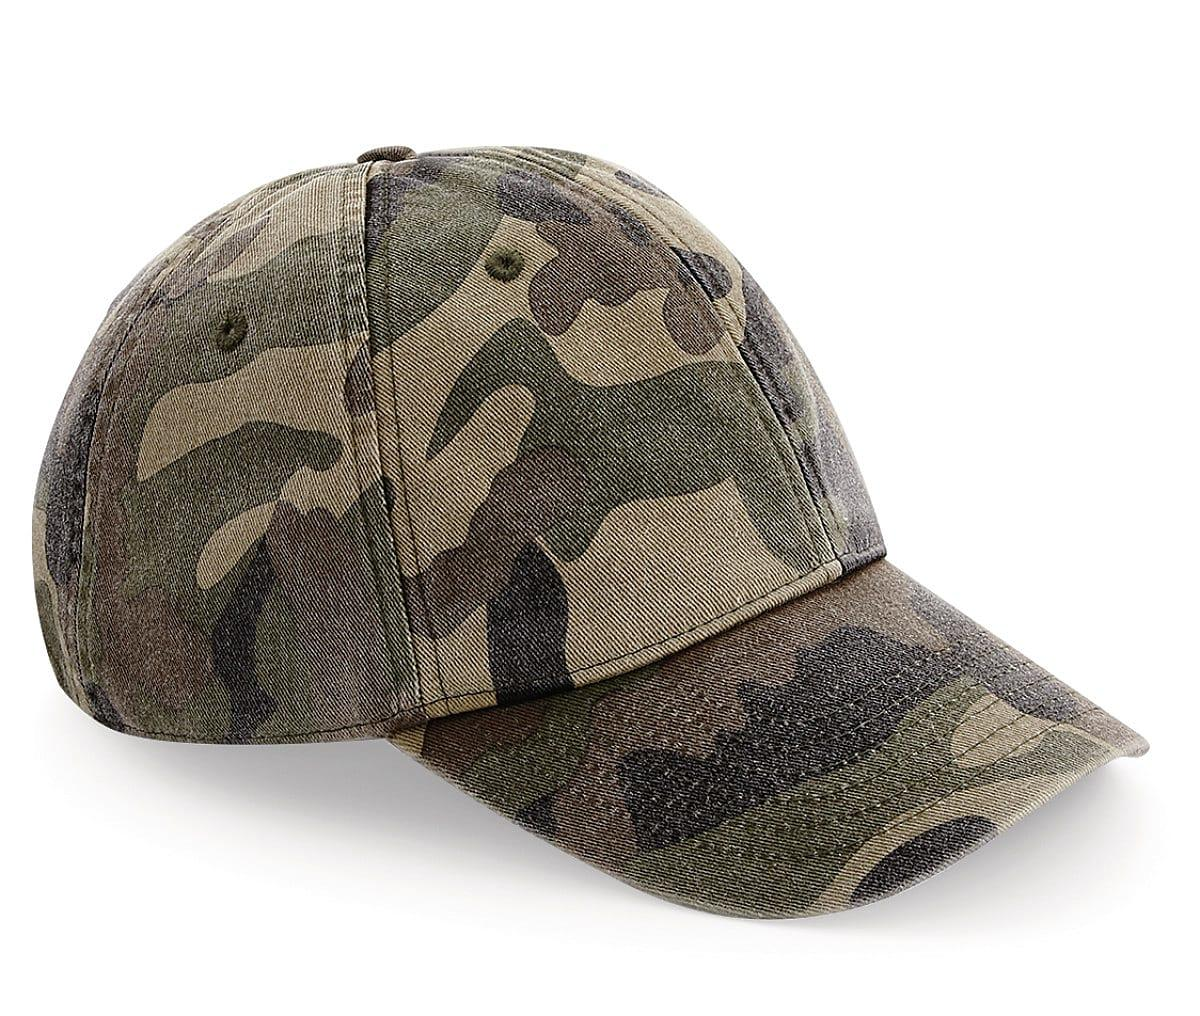 Beechfield Low Profile Vintage Cap in Vintage Jungle Camo (Product Code: B655)